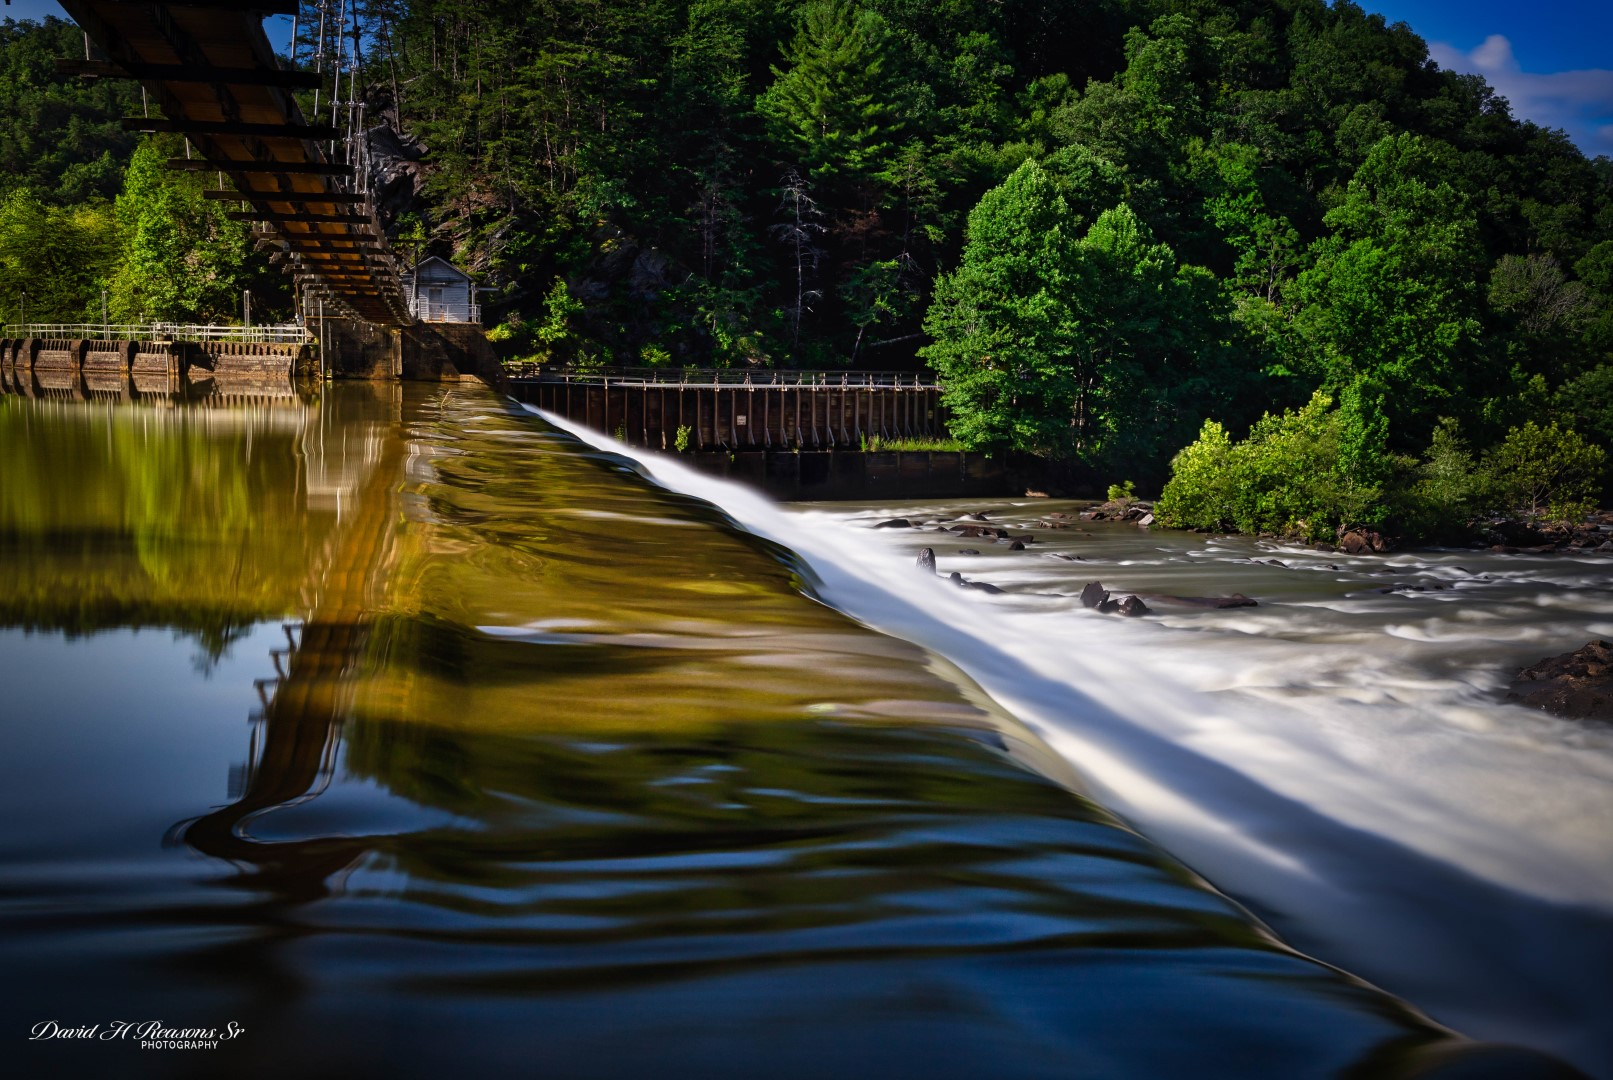 Completed in 1913, it is connected to the Ocoee Powerhouse via a 5 mile long wooden flume.